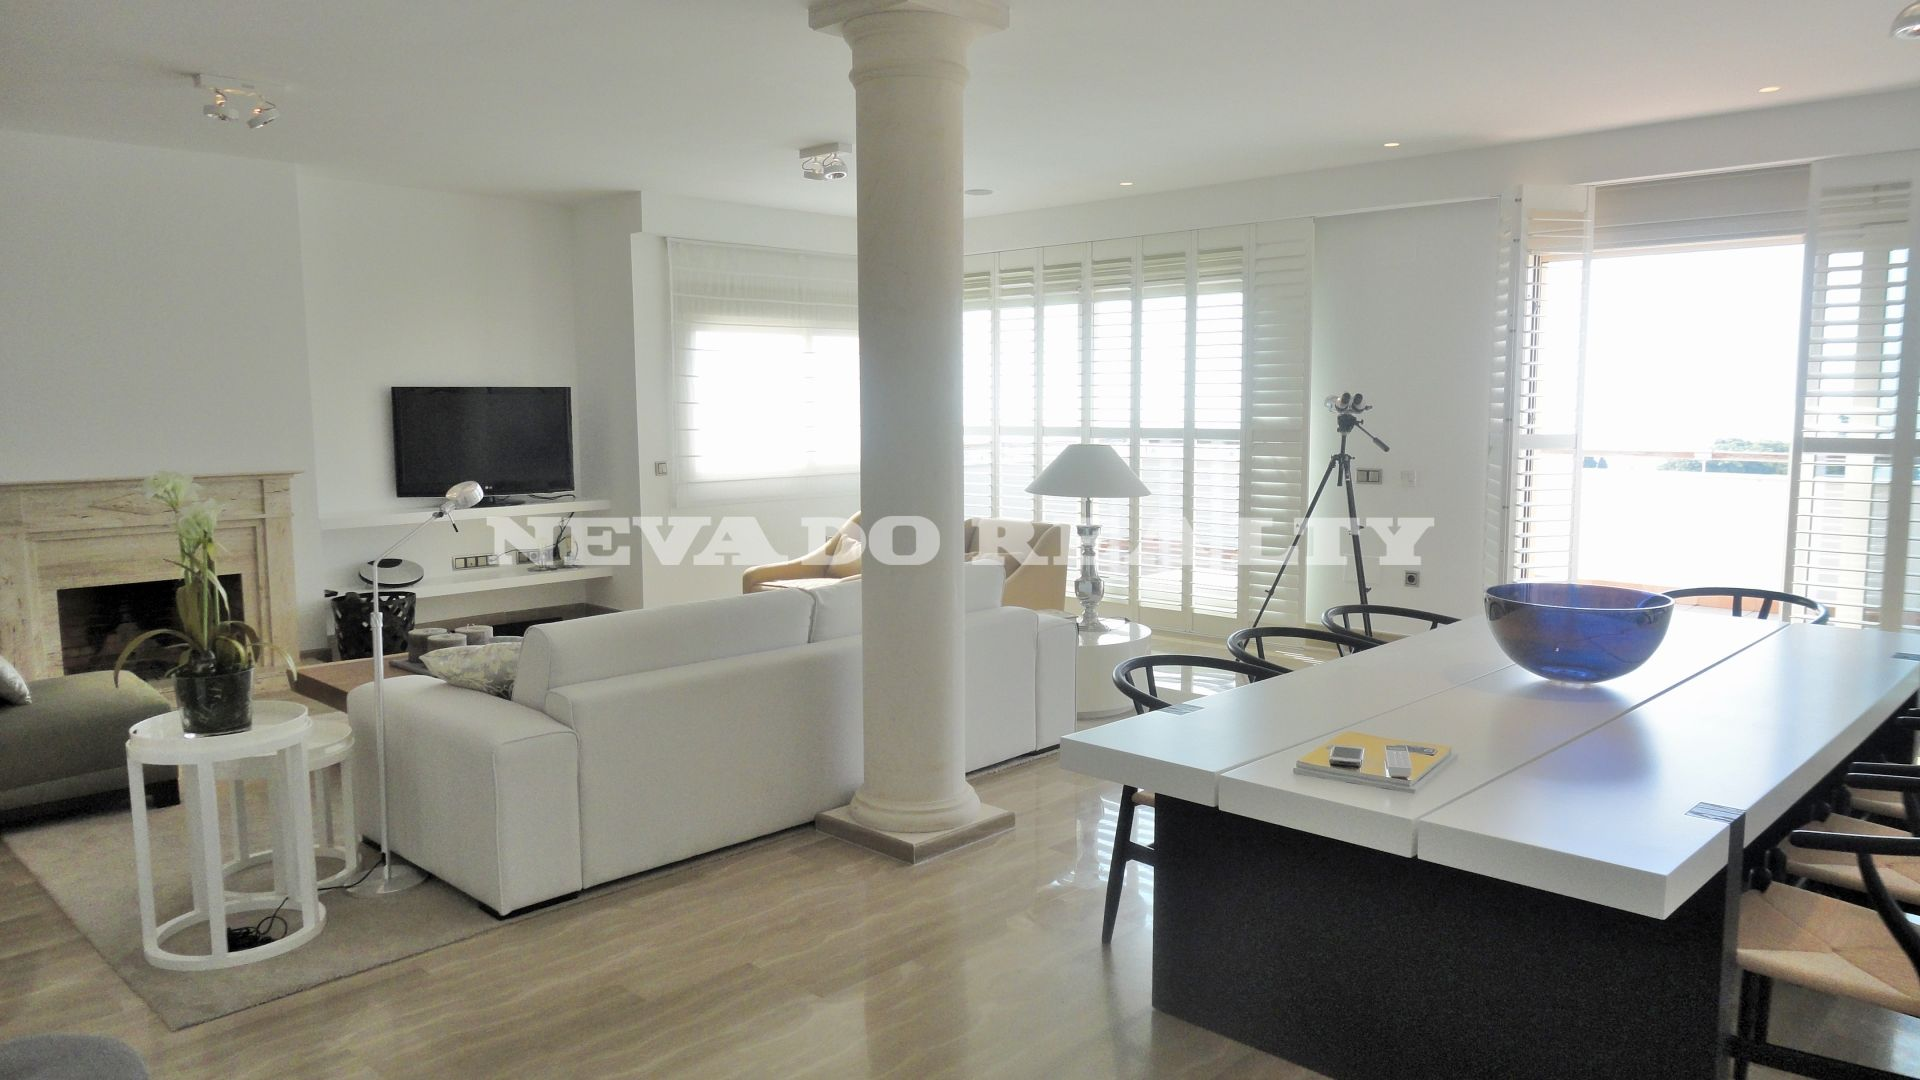 Duplex penthouse apartment in Marbella Golden Mile ready to live in and with sea views